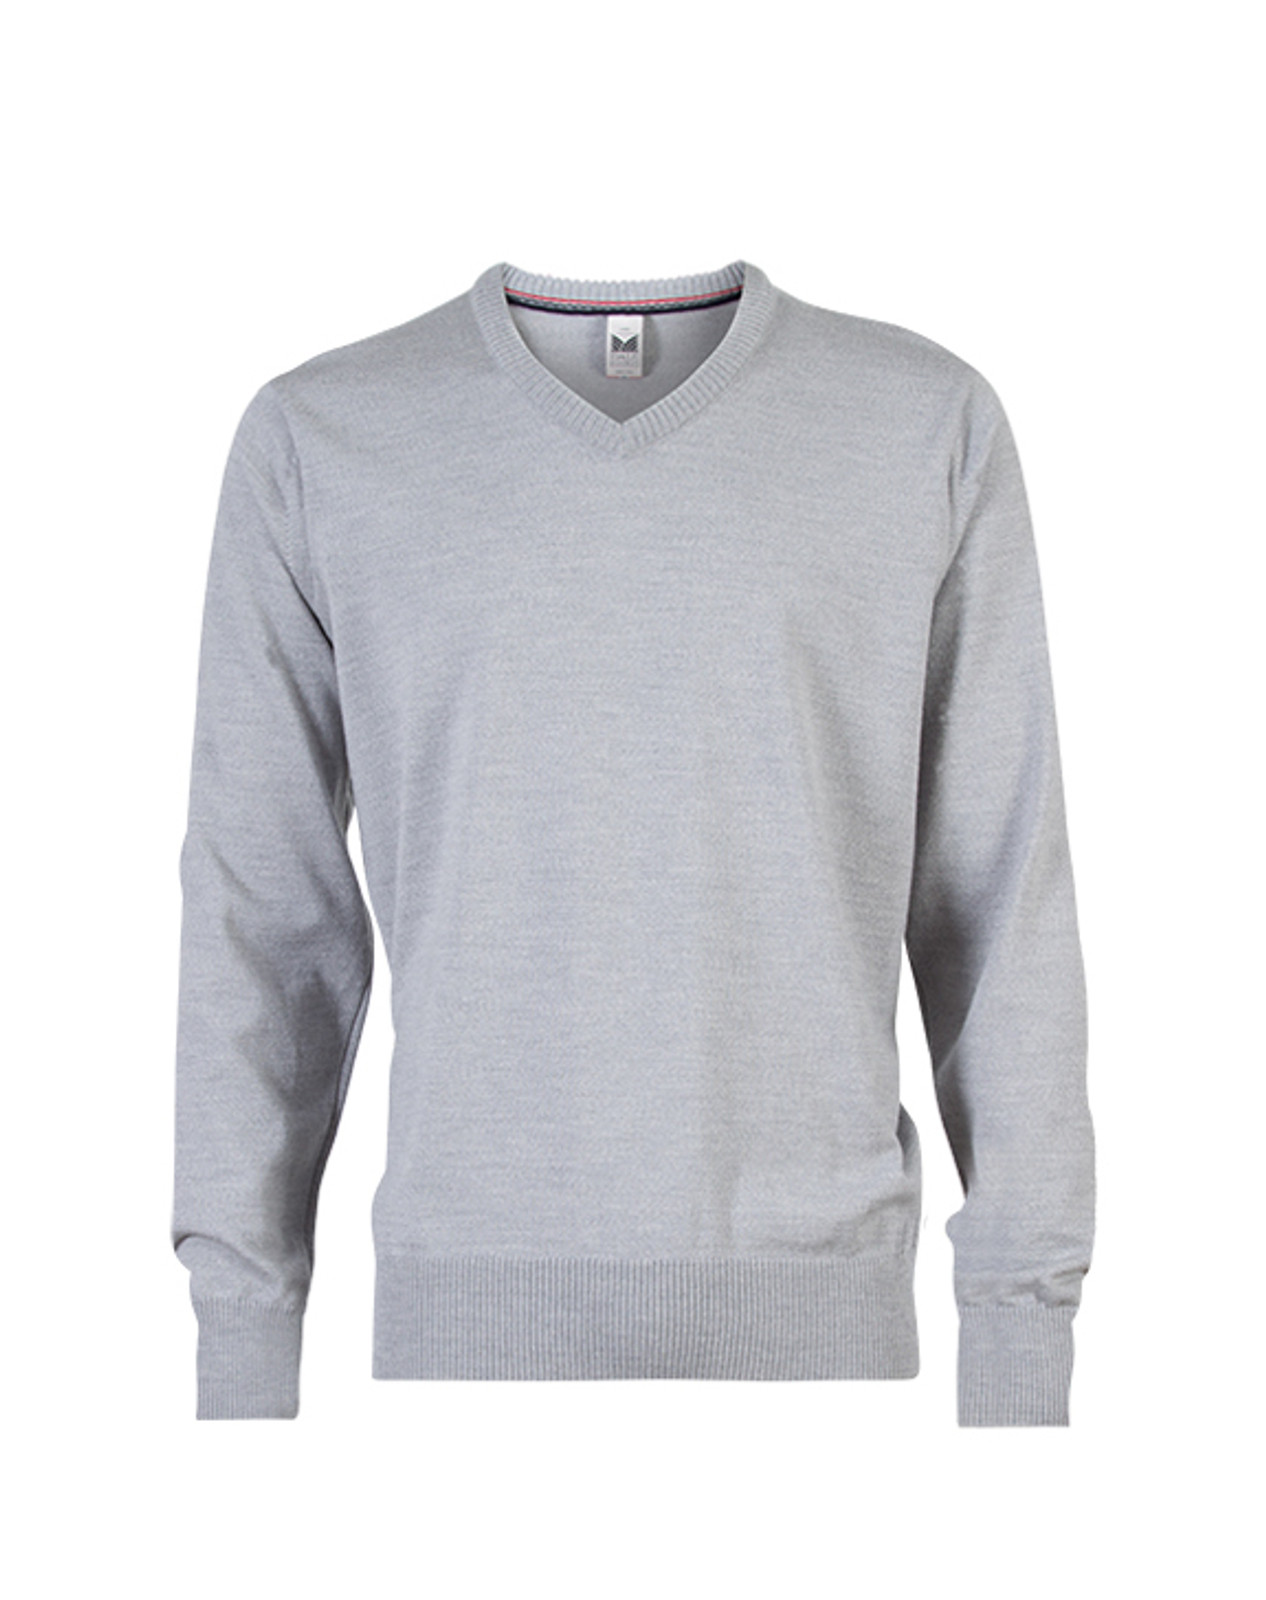 Dale of Norway, Harald Sweater, Mens, in Light Grey Melange, 92412-E